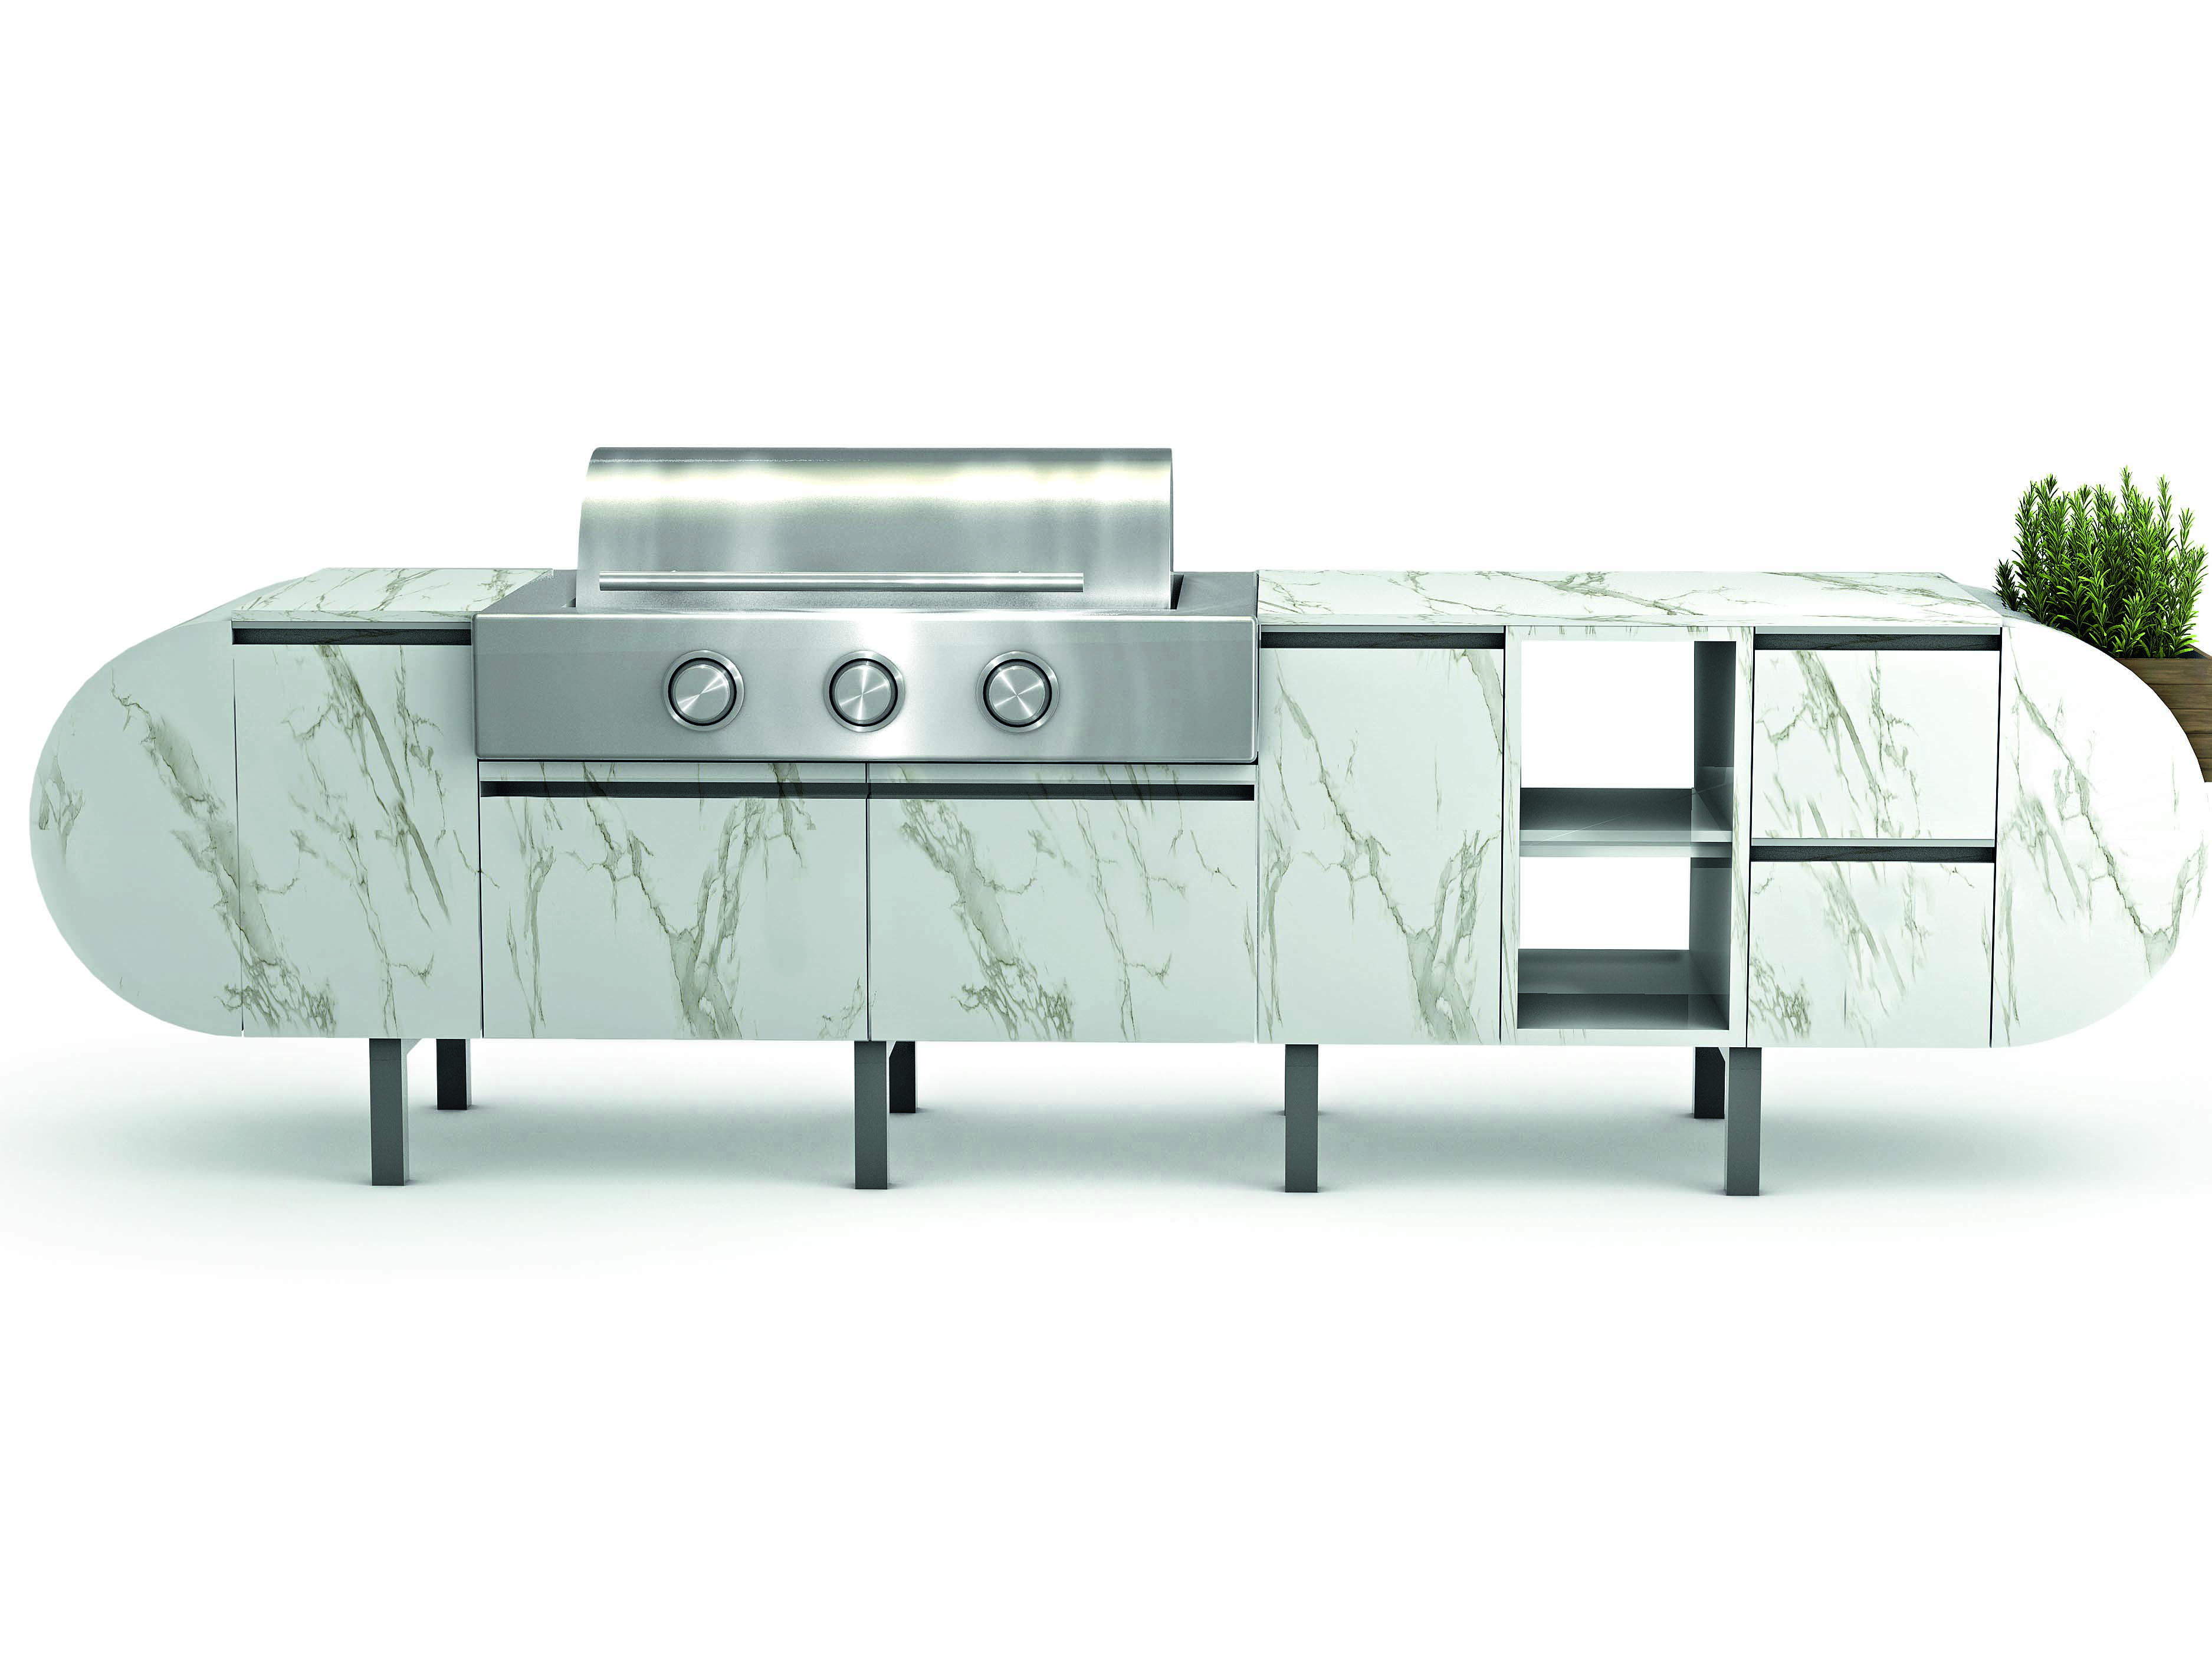 The ASA-D2, by Daniel Germani in partnership with Brown Jordan Outdoor Kitchens, is an innovative modular outdoor kitchen that works in any setting.